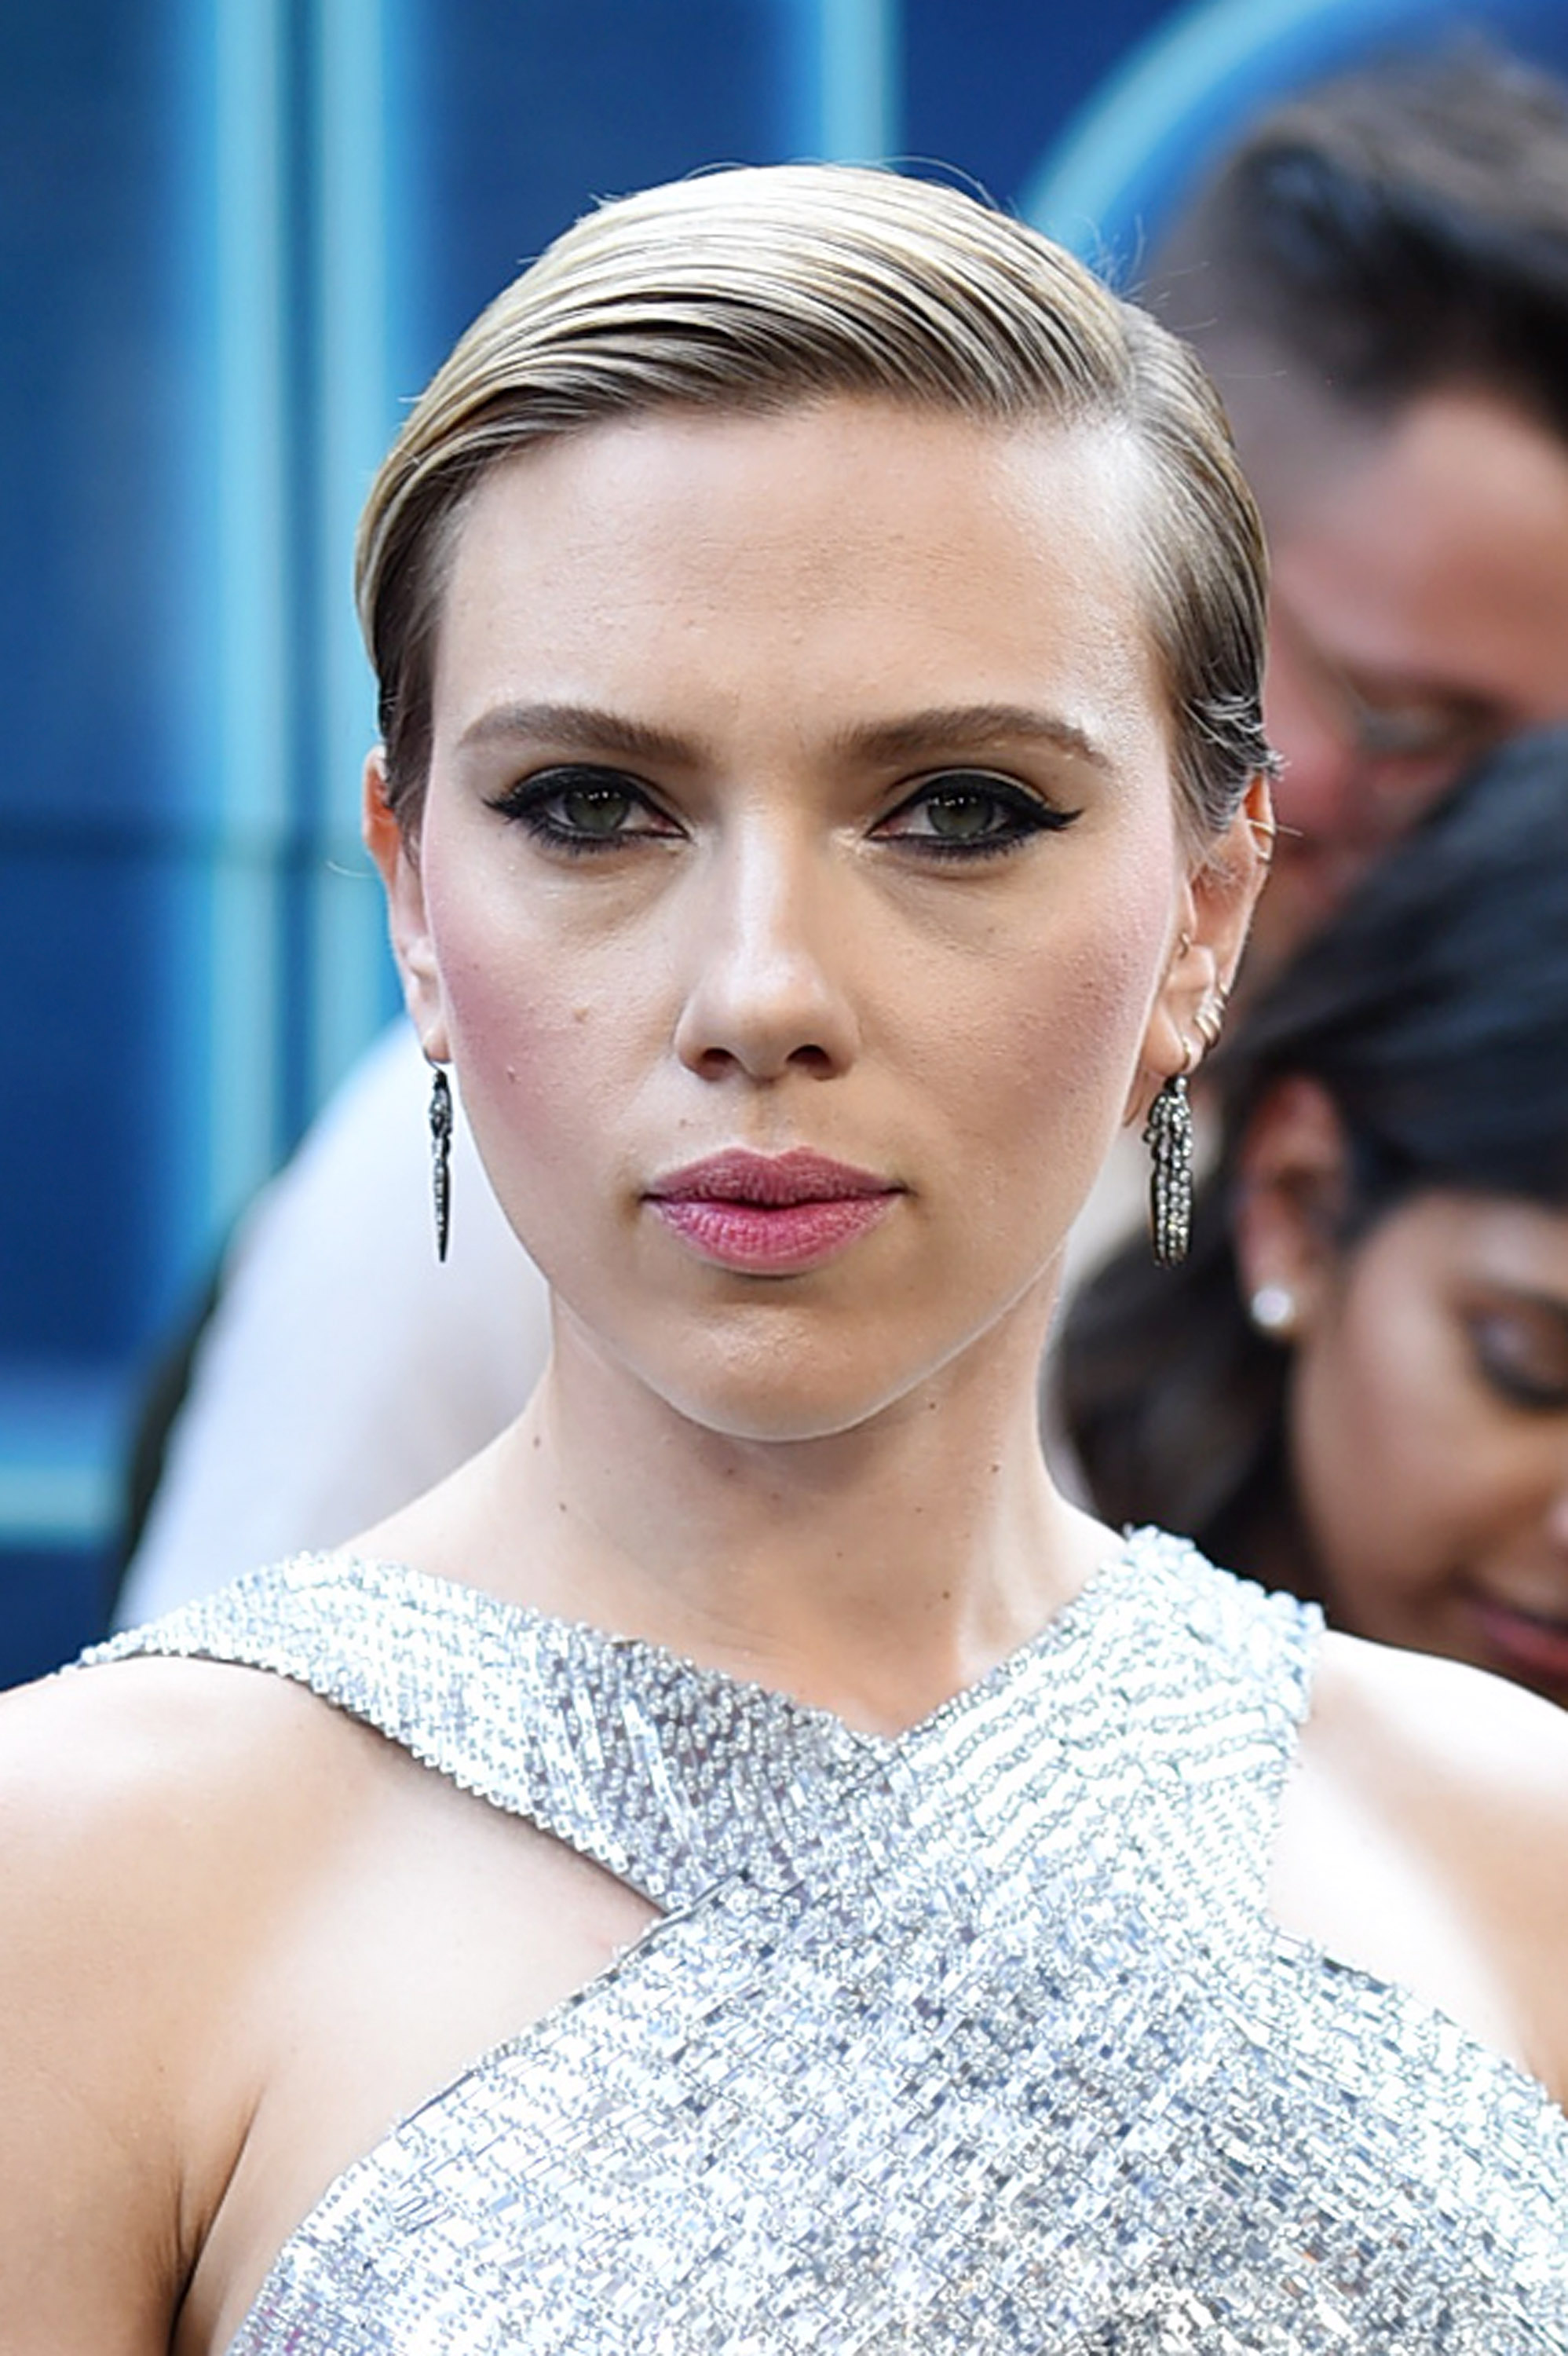 Scarlett Johansson attends the 'Rough Night' premeire at AMC Loews Lincoln Square on June 12, 2017 in New York City.